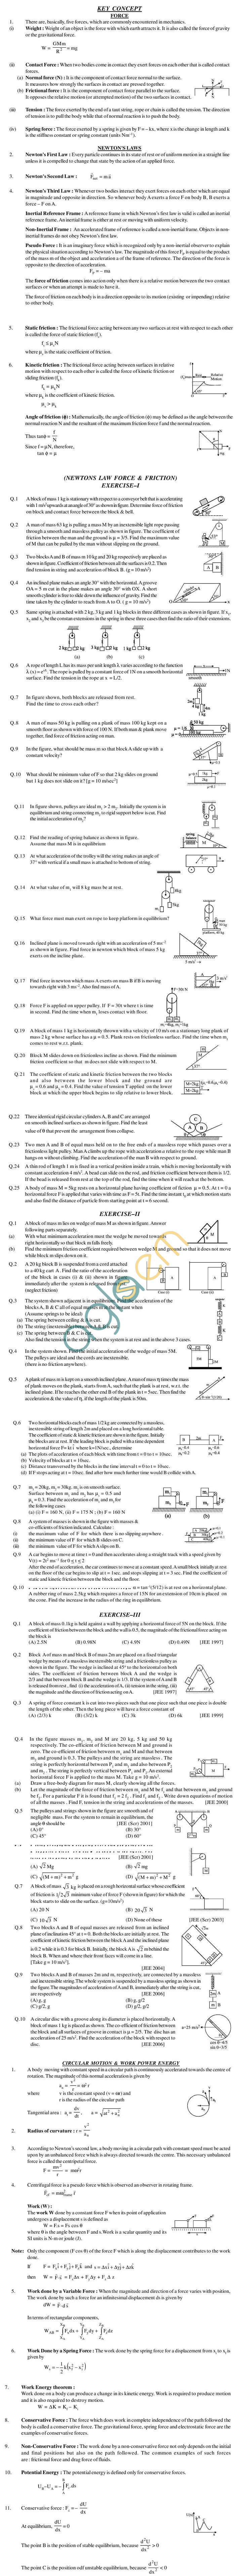 Physics Study Material - Newton Law of Motion